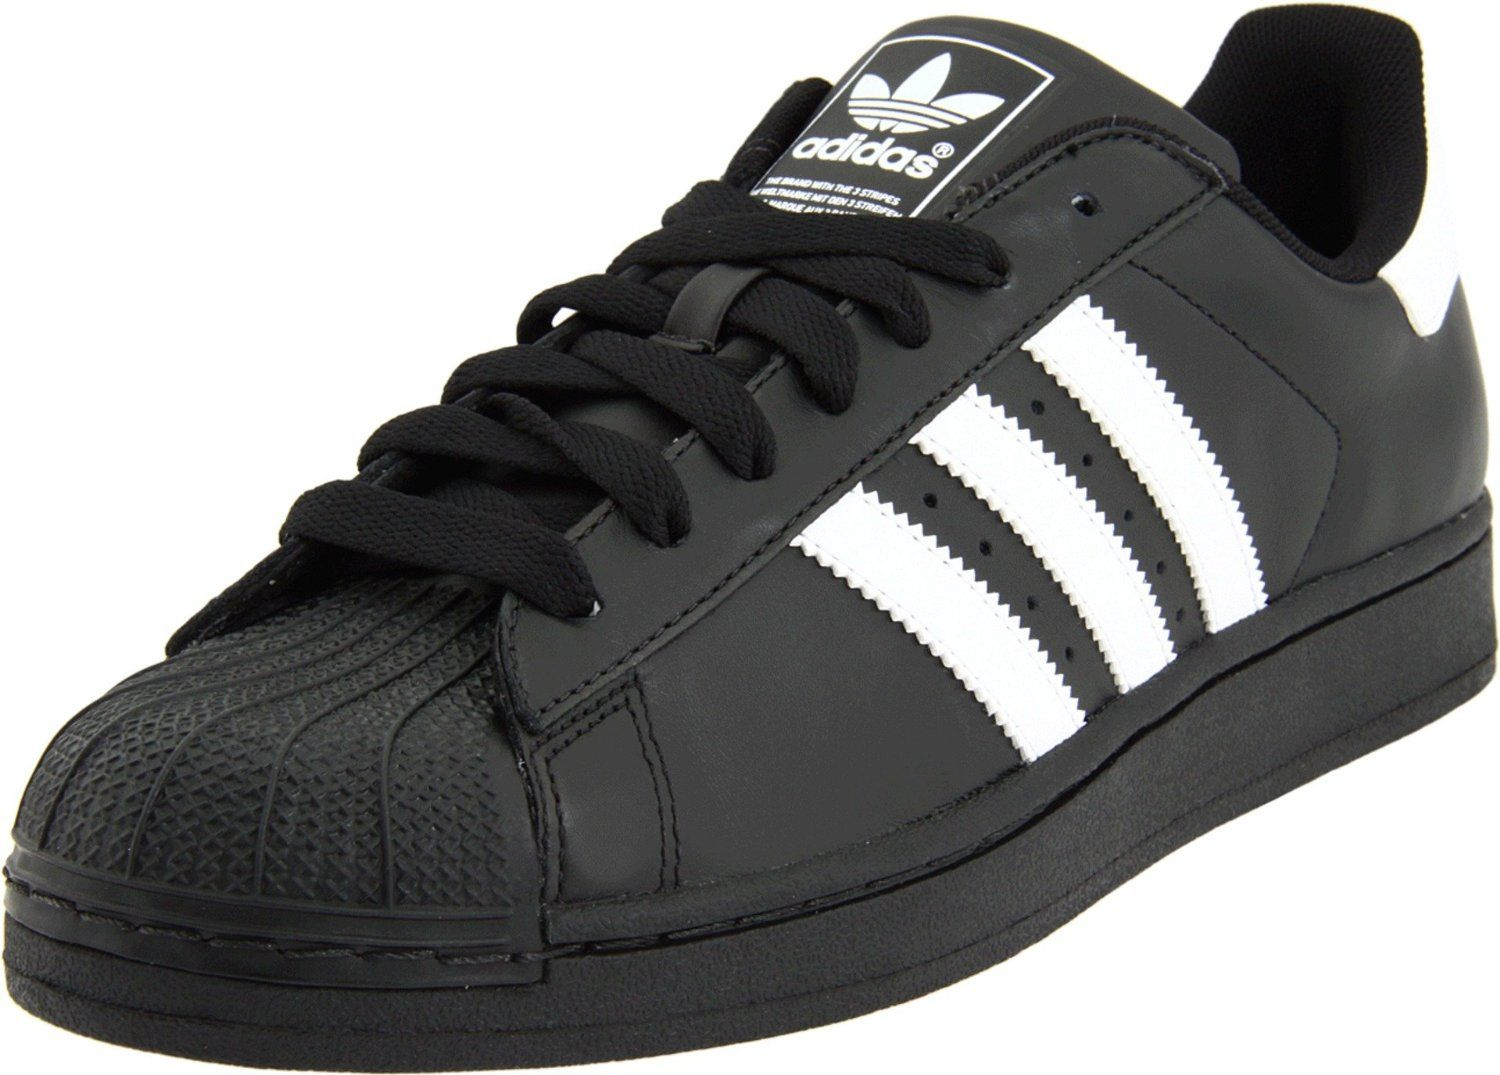 finest selection 98ffc 3f362 retro shell toes   Adidas shell toe